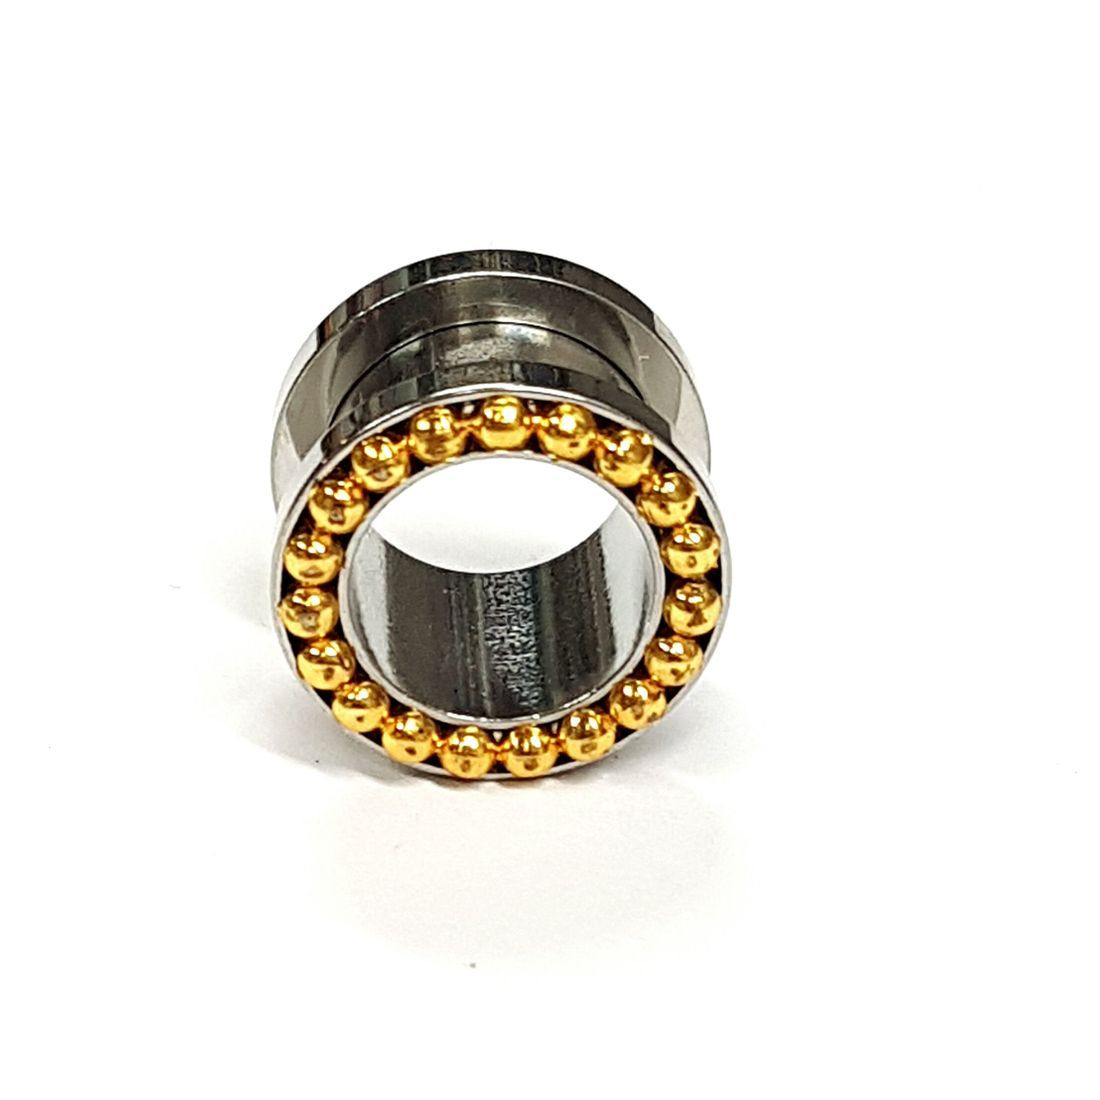 12mm titanium plug available at kazbah online or our Leicester City Centre Store